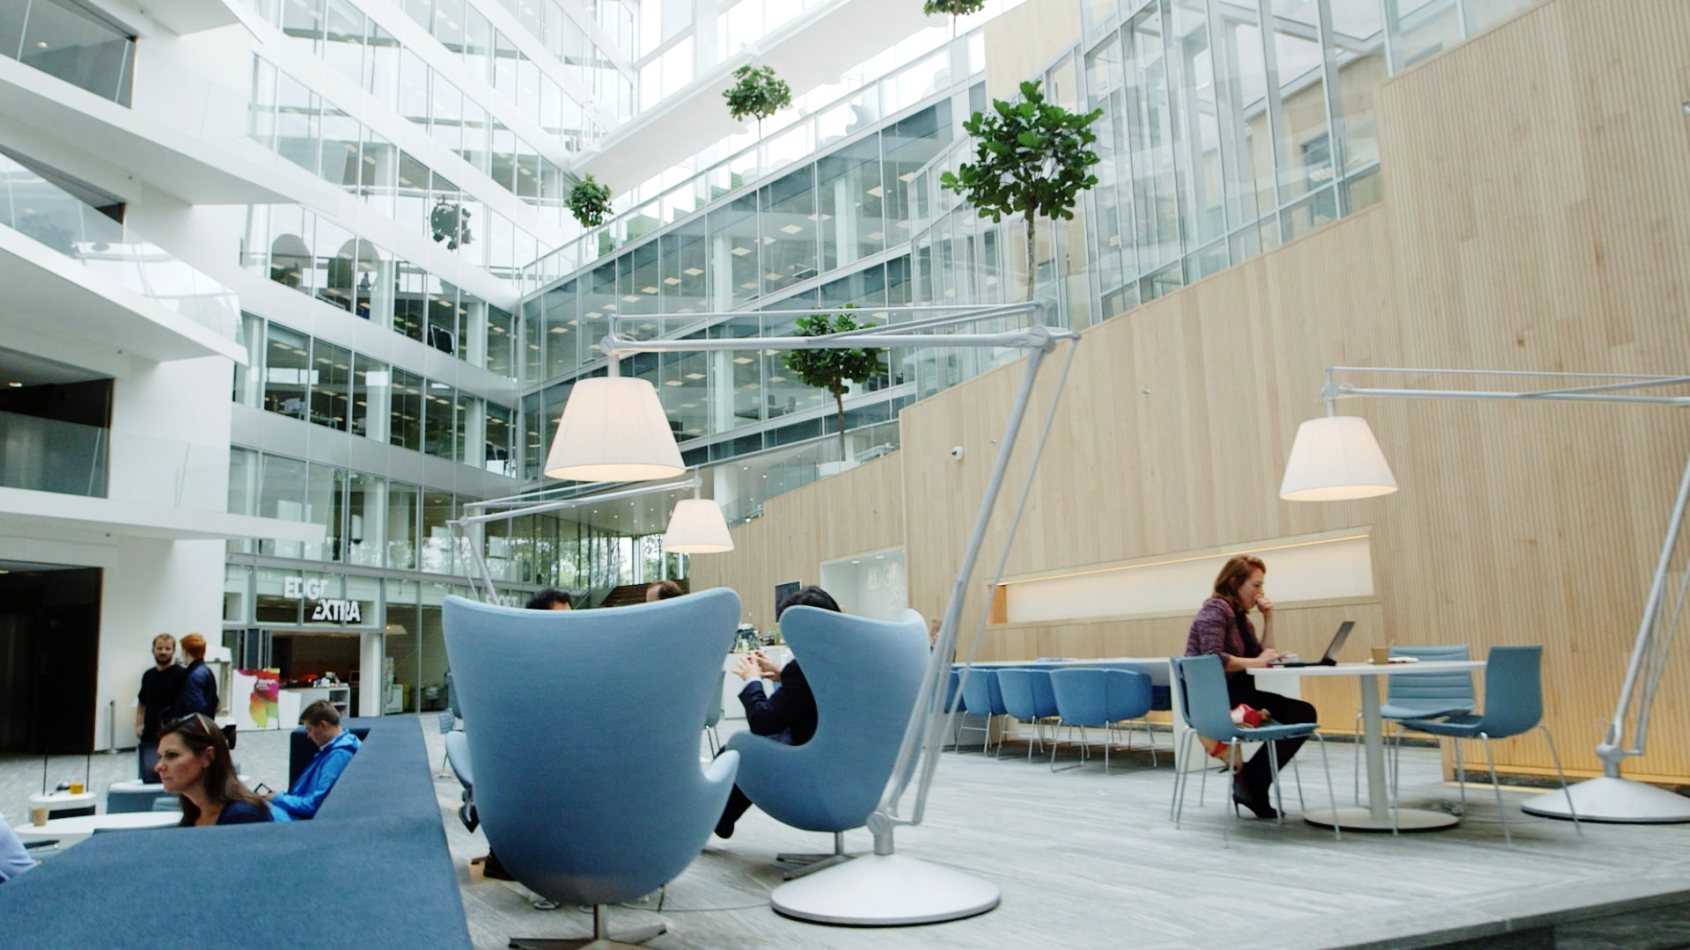 BREEAM - Is this the World's Smartest Office Building?